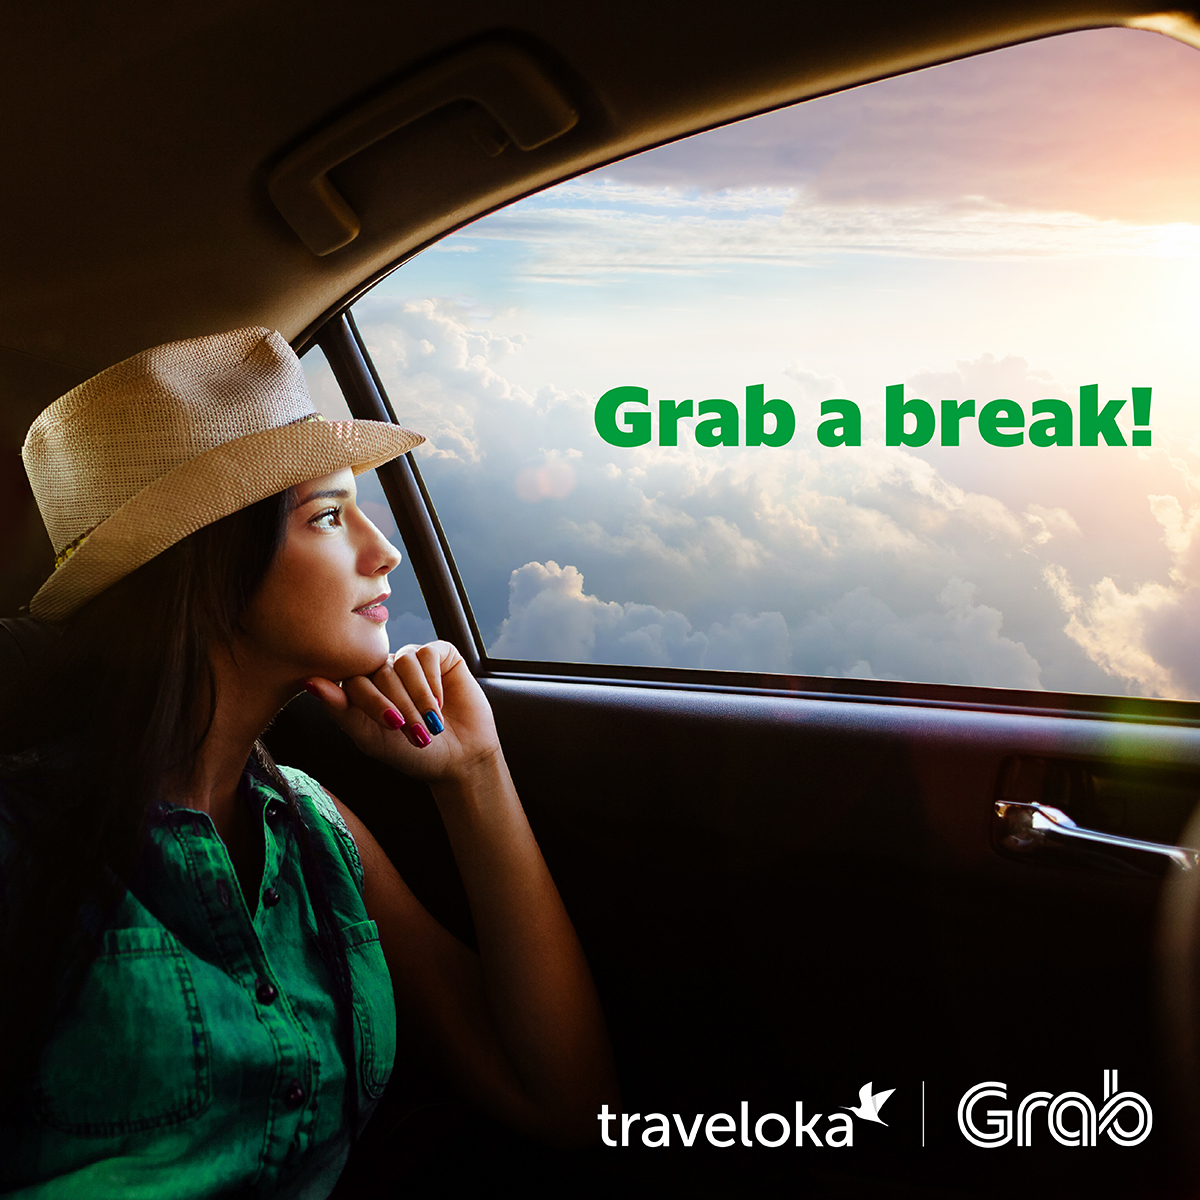 Traveloka Teams Up With Grab To Give Away Flight Hotel Packages Worth Rm21 000